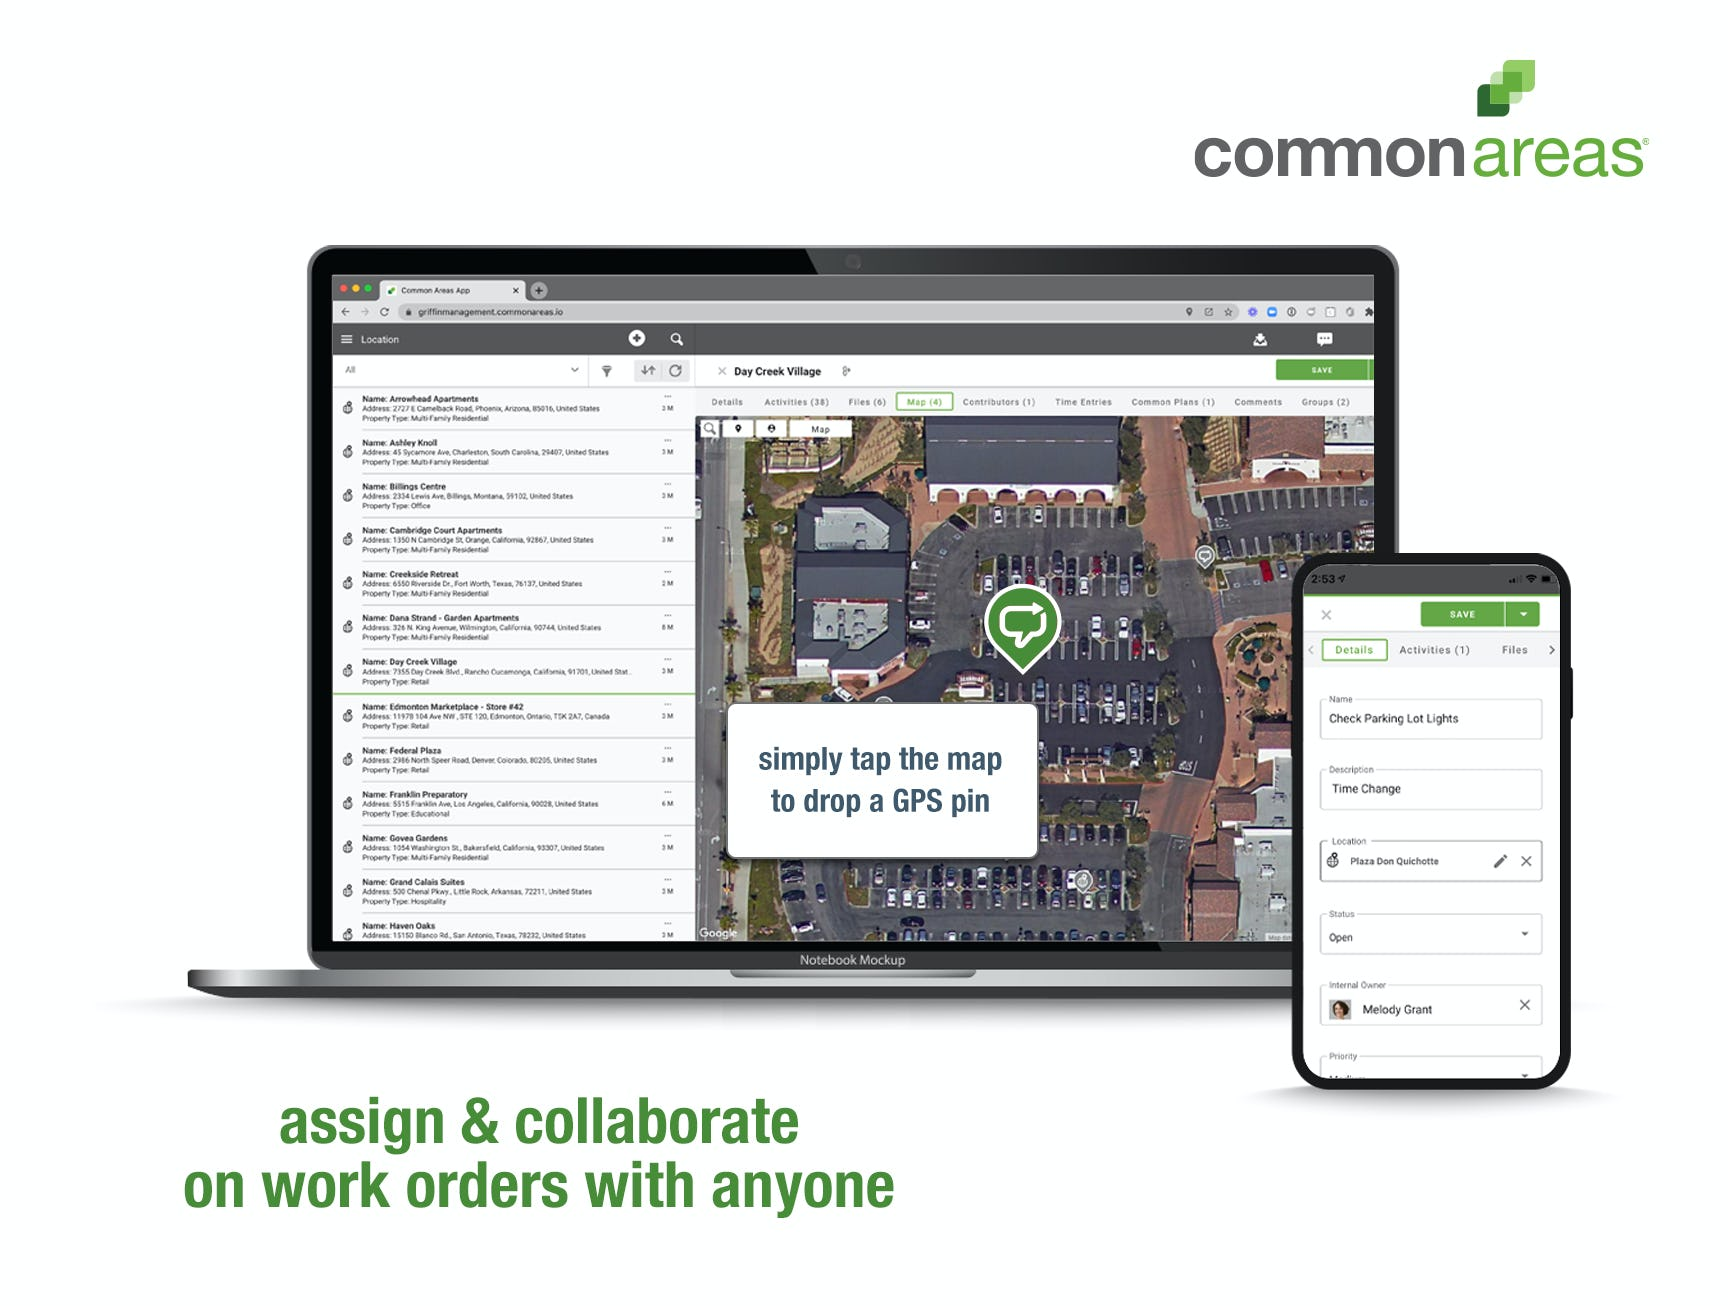 Common Areas Software - Create, assign and track work orders with everyone you work with inside or outside of your company. Easily provide everything needed for you and your teams to get the work done right including files, photos, GPS pins, status notifications and more.